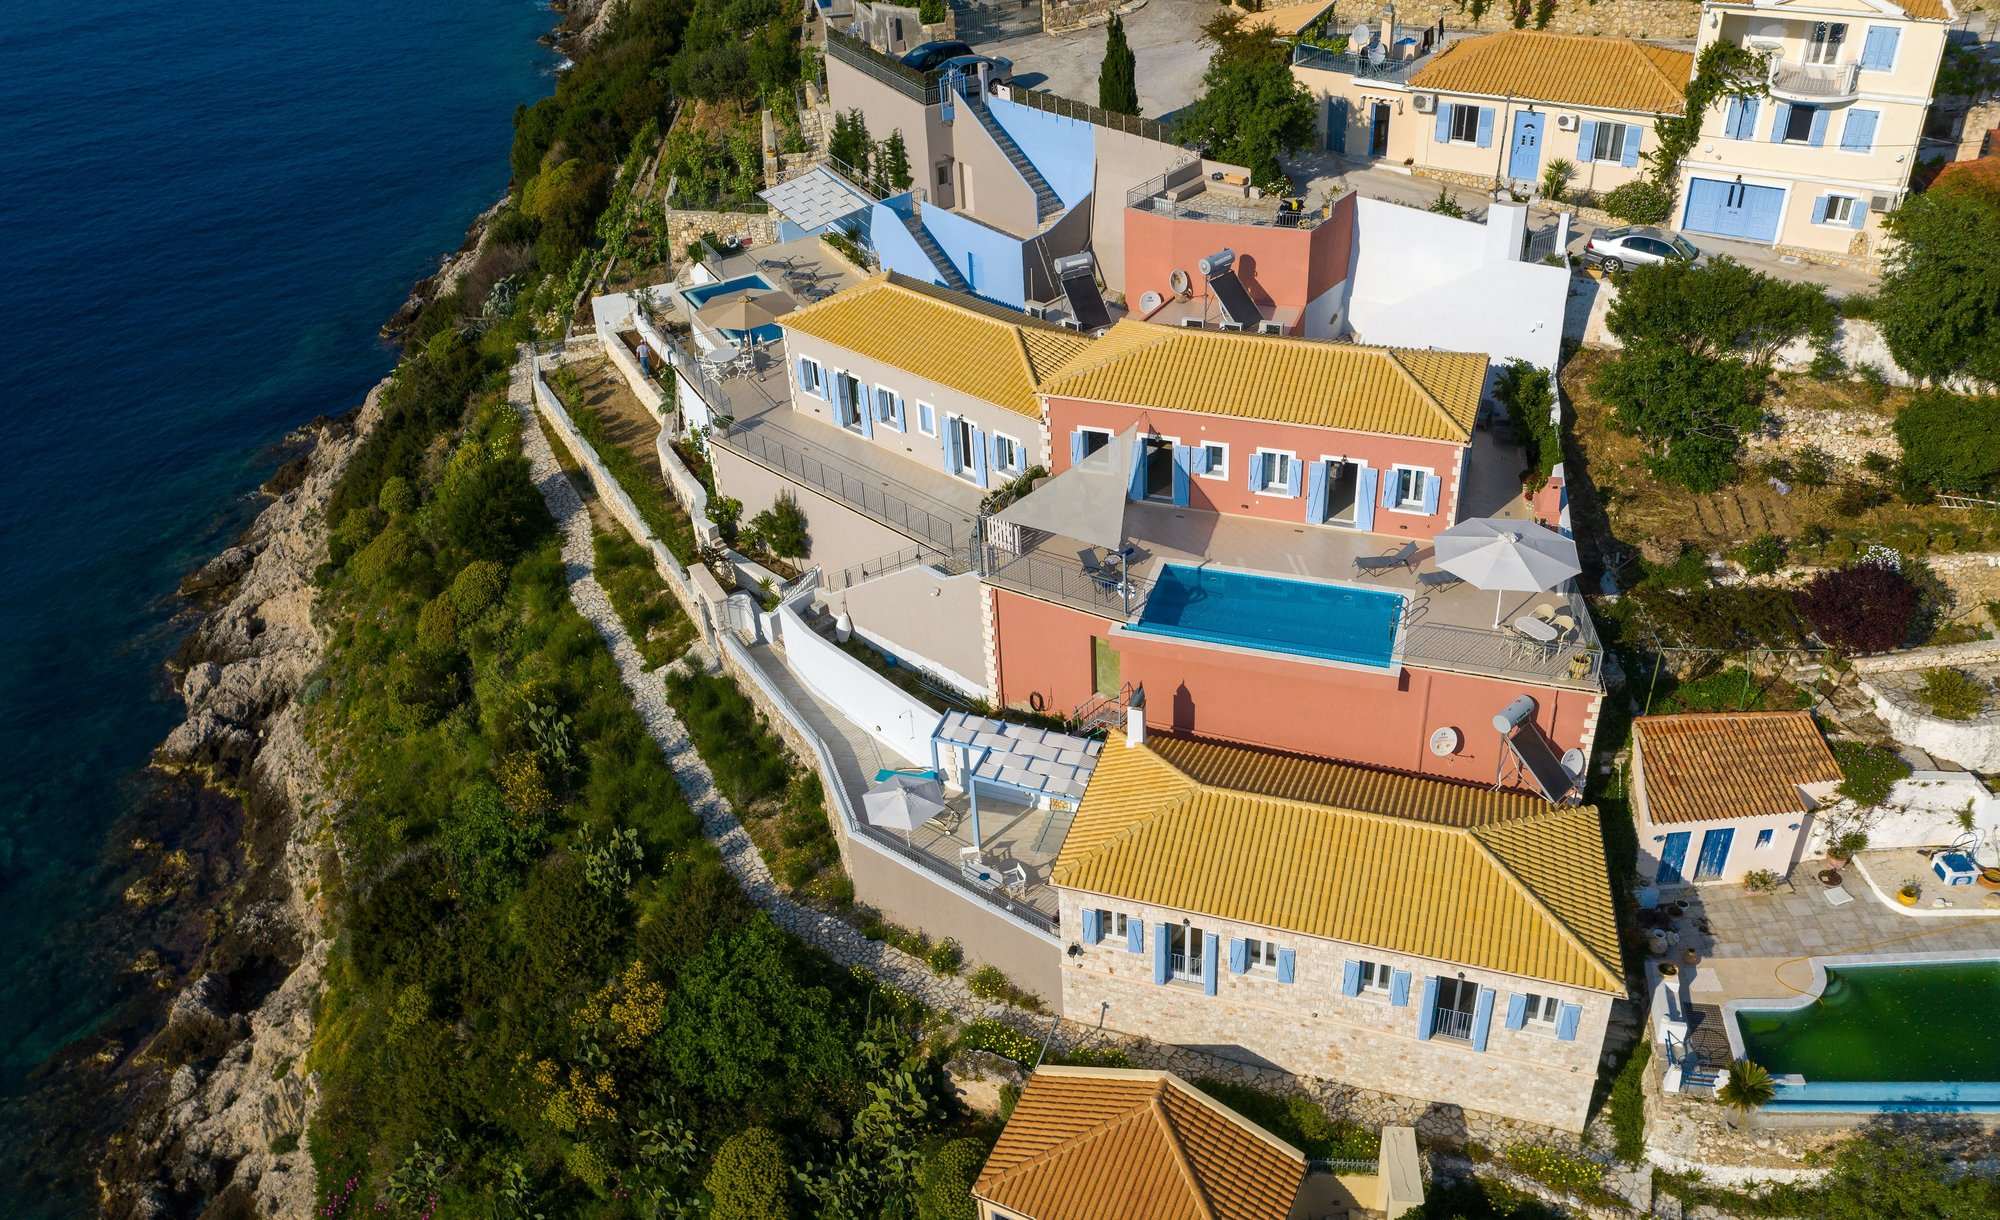 Astakos is the property with a yellow roof in the front